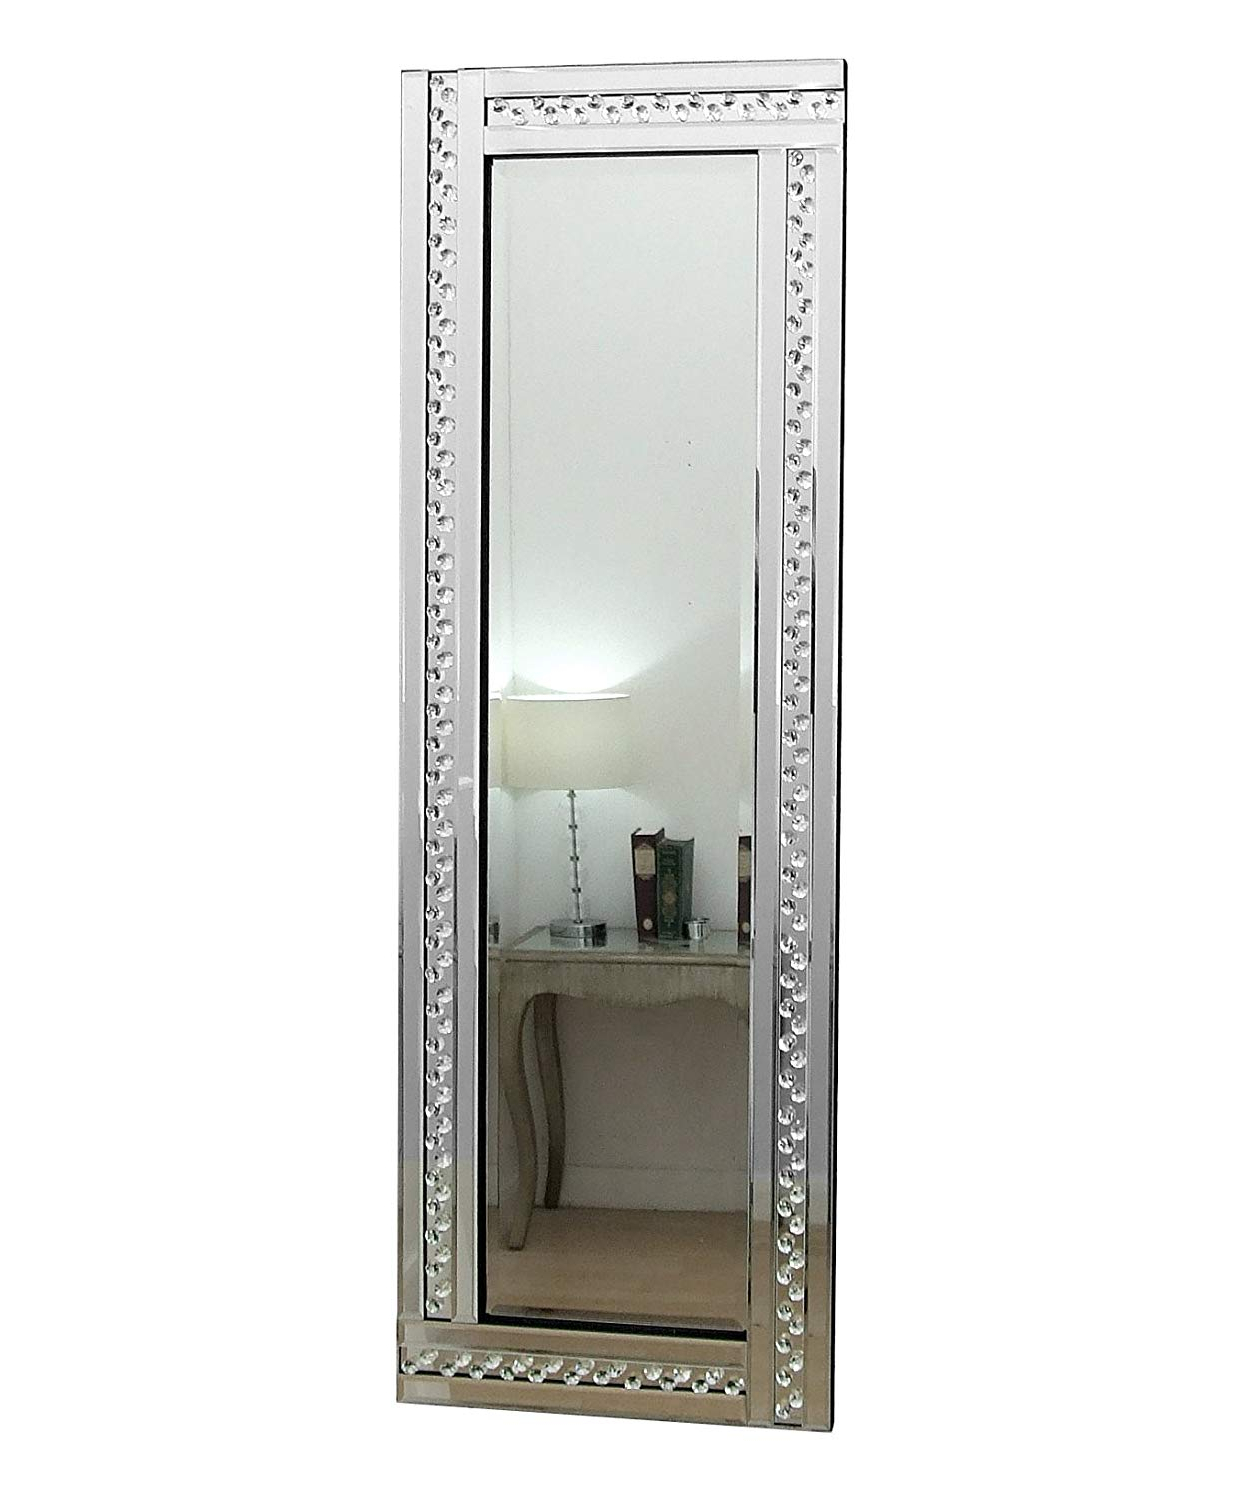 "Barcelona Trading Glitz Crystal Long Silver Glass Framed Full Length Bevelled Wall Mirror 48"" X 16"" Within Preferred Framed Full Length Wall Mirrors (View 8 of 20)"